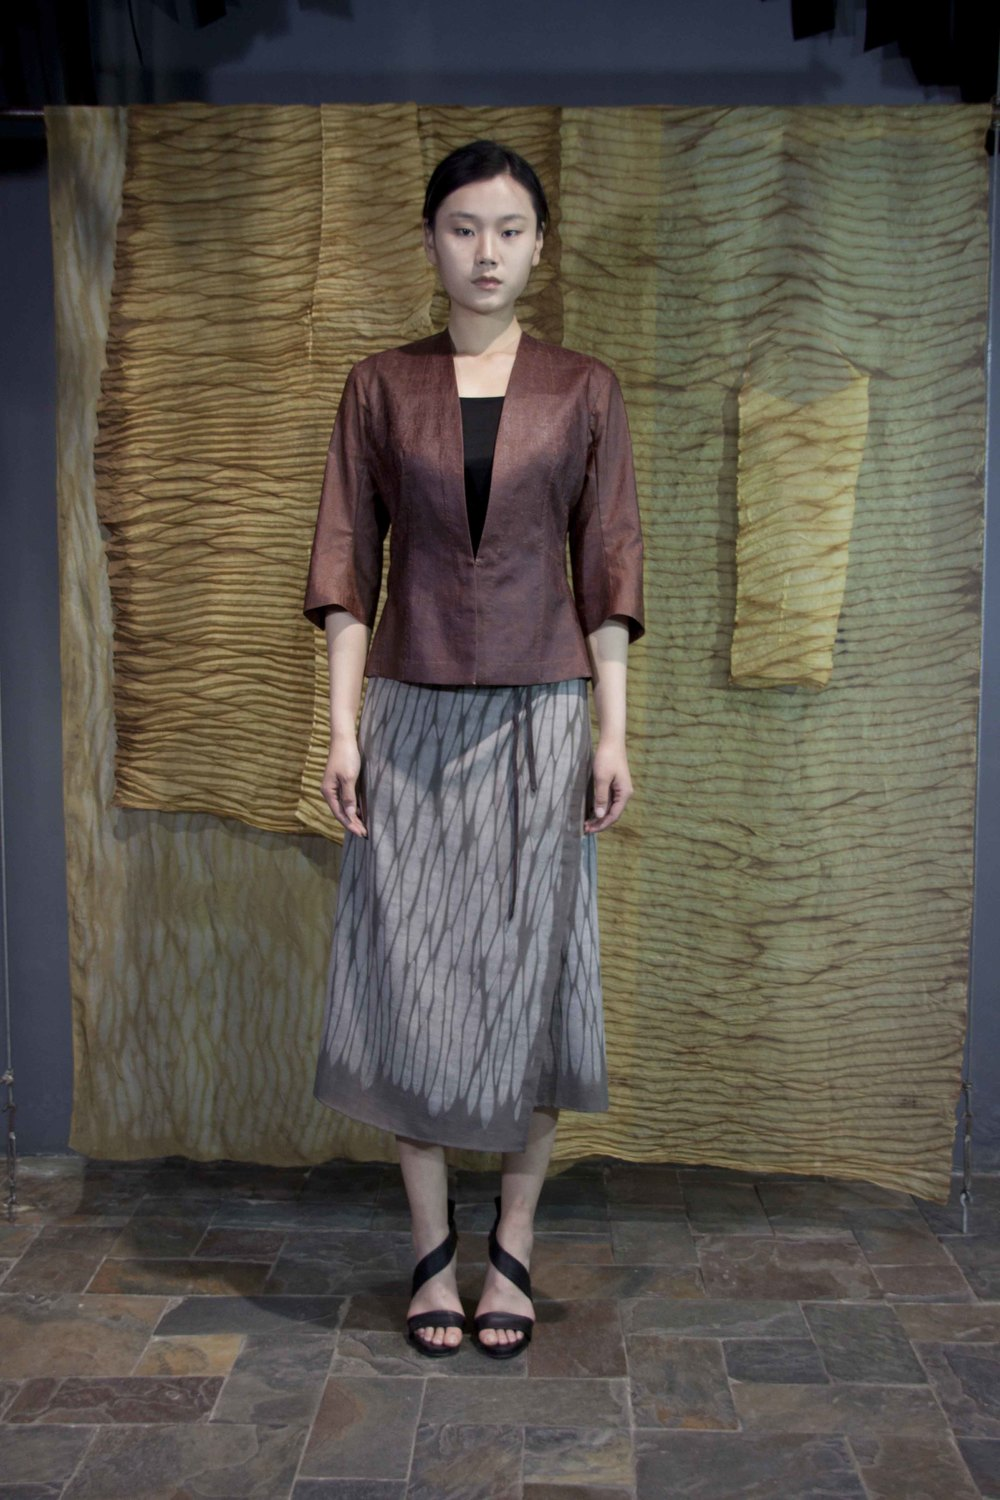 "28-34 Cinnamon tea-silk jacket/ Iron rust natural-dyed wrap-around skirt/    肉桂色红芸纱夹克  /  铁锈处理手工天然染色半身裙子                                                                                                                                                                                                                                                                                                     /* Style Definitions */  table.MsoNormalTable 	{mso-style-name:""Table Normal""; 	mso-tstyle-rowband-size:0; 	mso-tstyle-colband-size:0; 	mso-style-noshow:yes; 	mso-style-priority:99; 	mso-style-qformat:yes; 	mso-style-parent:""""; 	mso-padding-alt:0in 5.4pt 0in 5.4pt; 	mso-para-margin-top:0in; 	mso-para-margin-right:0in; 	mso-para-margin-bottom:10.0pt; 	mso-para-margin-left:0in; 	line-height:115%; 	mso-pagination:widow-orphan; 	font-size:11.0pt; 	font-family:""Calibri"",""sans-serif""; 	mso-ascii-font-family:Calibri; 	mso-ascii-theme-font:minor-latin; 	mso-hansi-font-family:Calibri; 	mso-hansi-theme-font:minor-latin; 	mso-bidi-font-family:""Times New Roman""; 	mso-bidi-theme-font:minor-bidi;}"